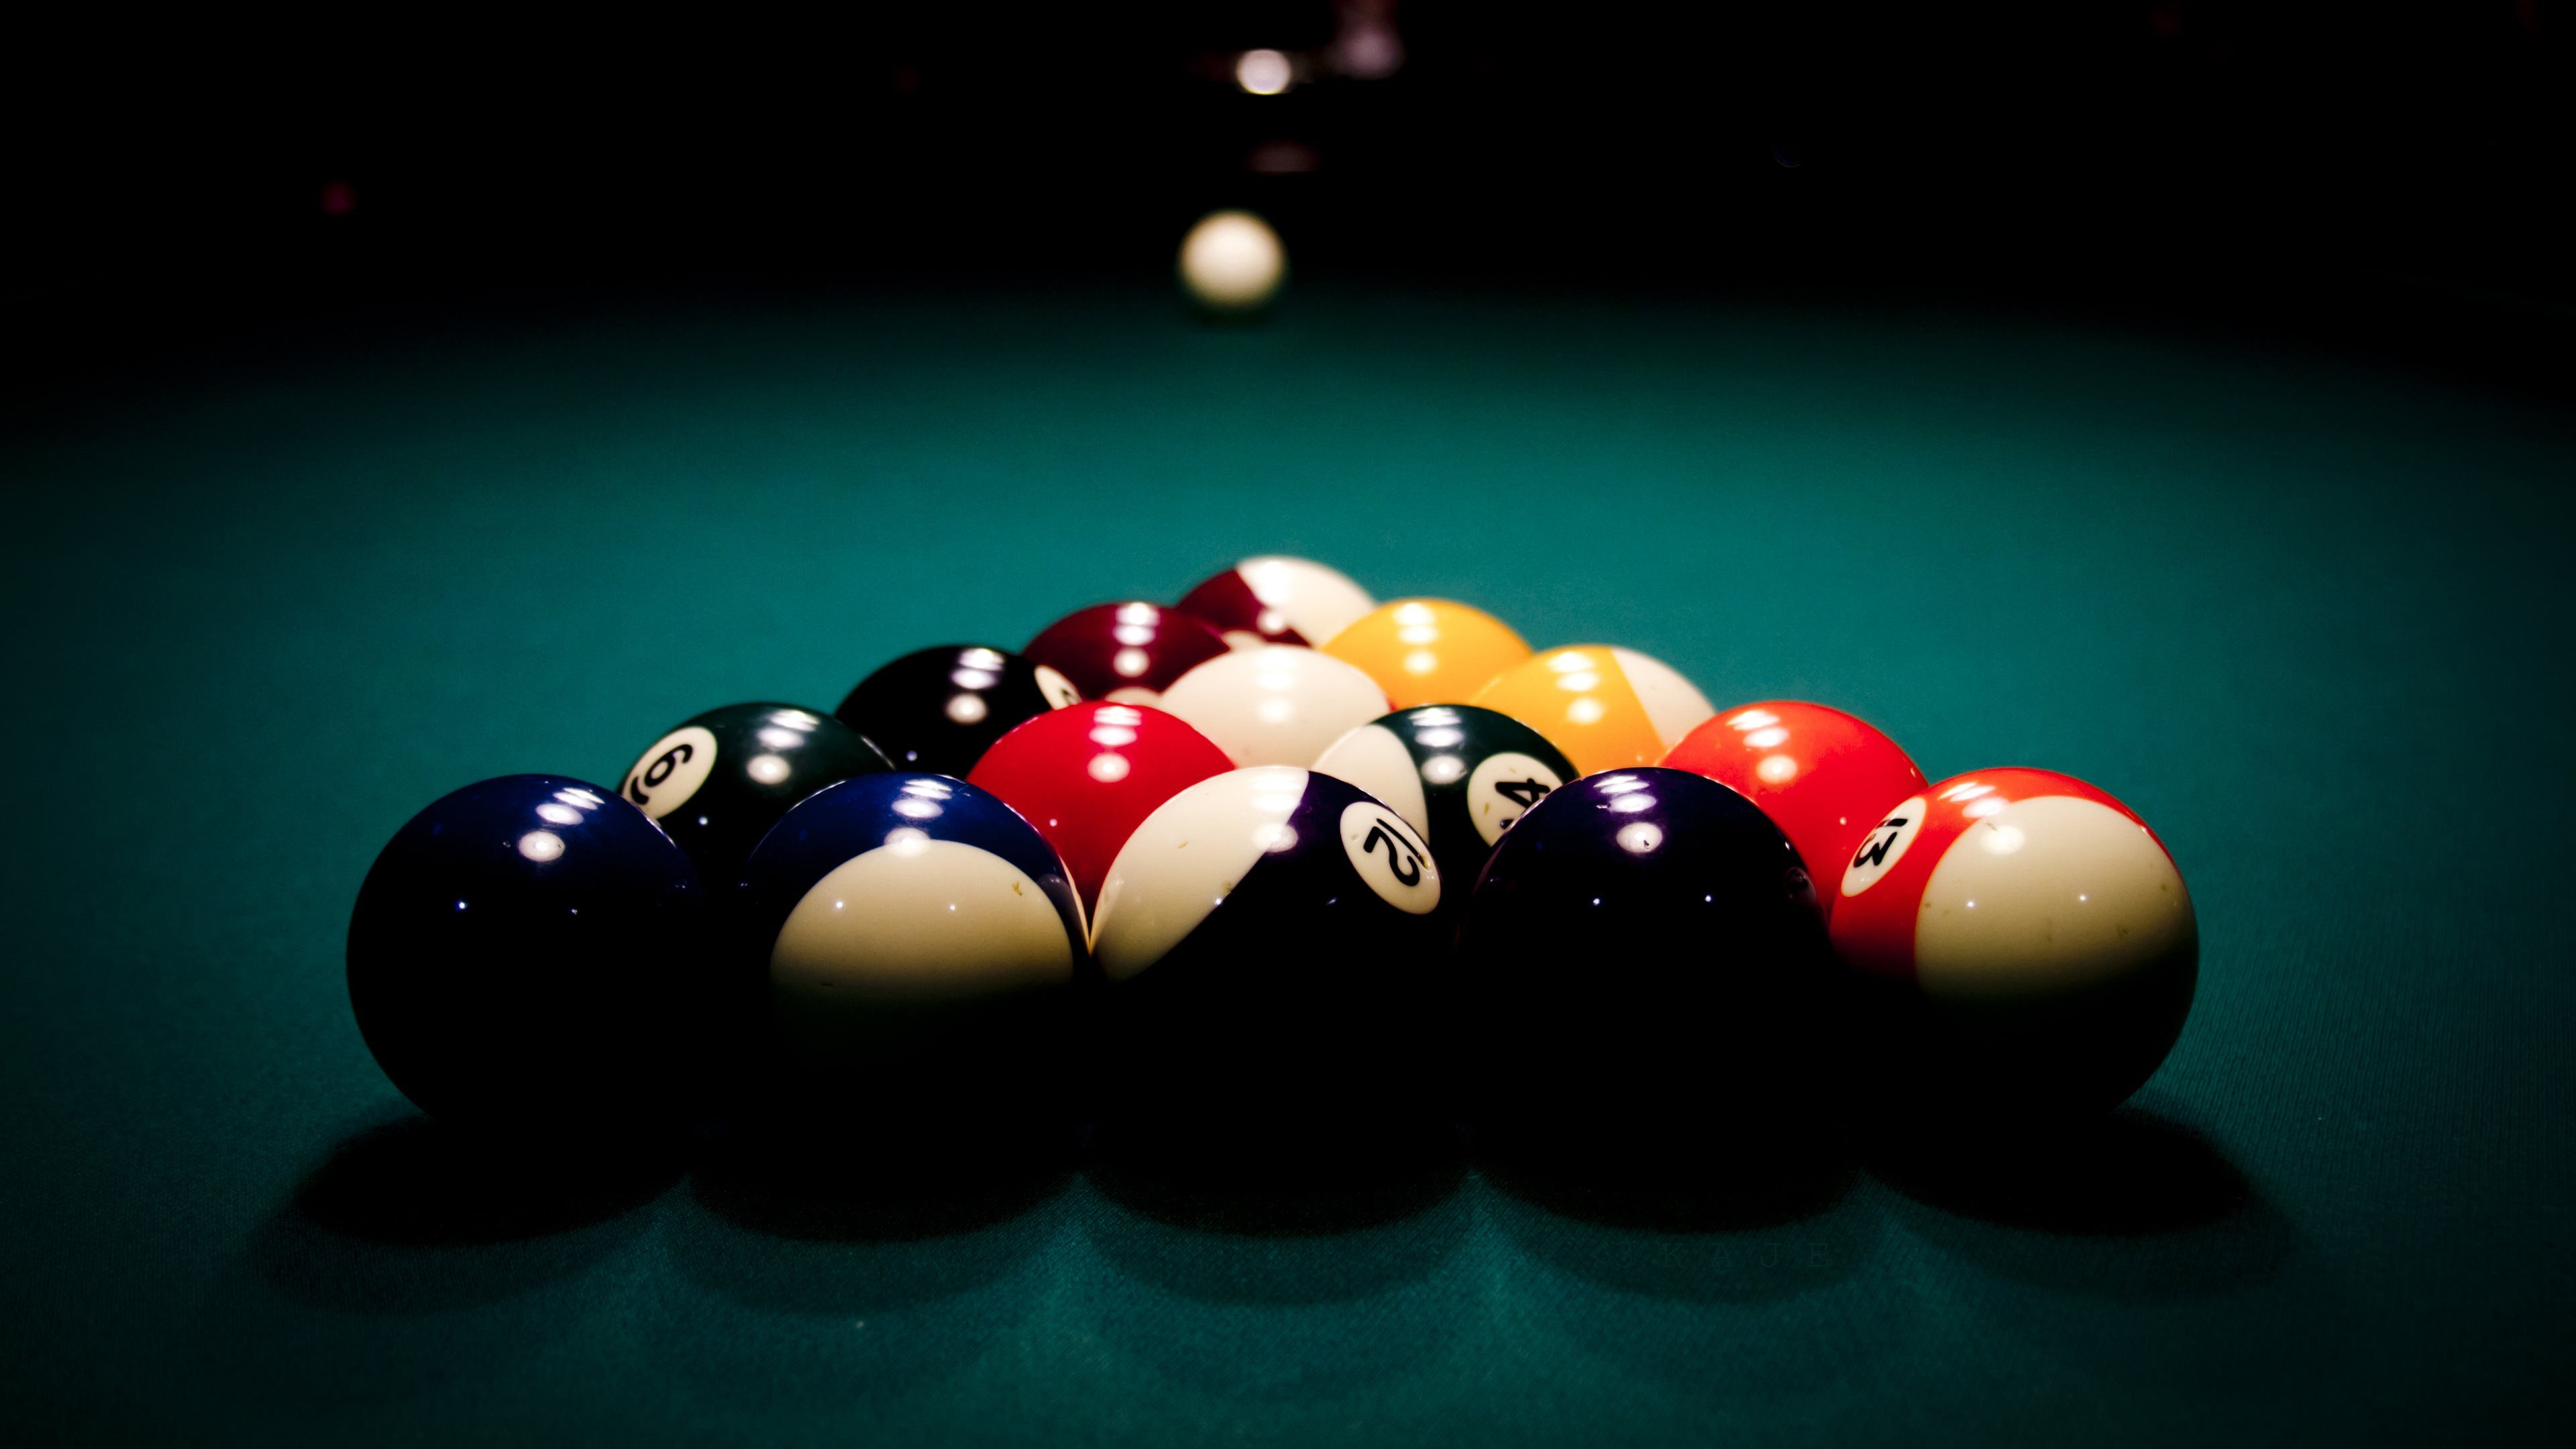 Snooker Wallpapers Find best latest Snooker Wallpapers for your PC desktop background & mobile ...